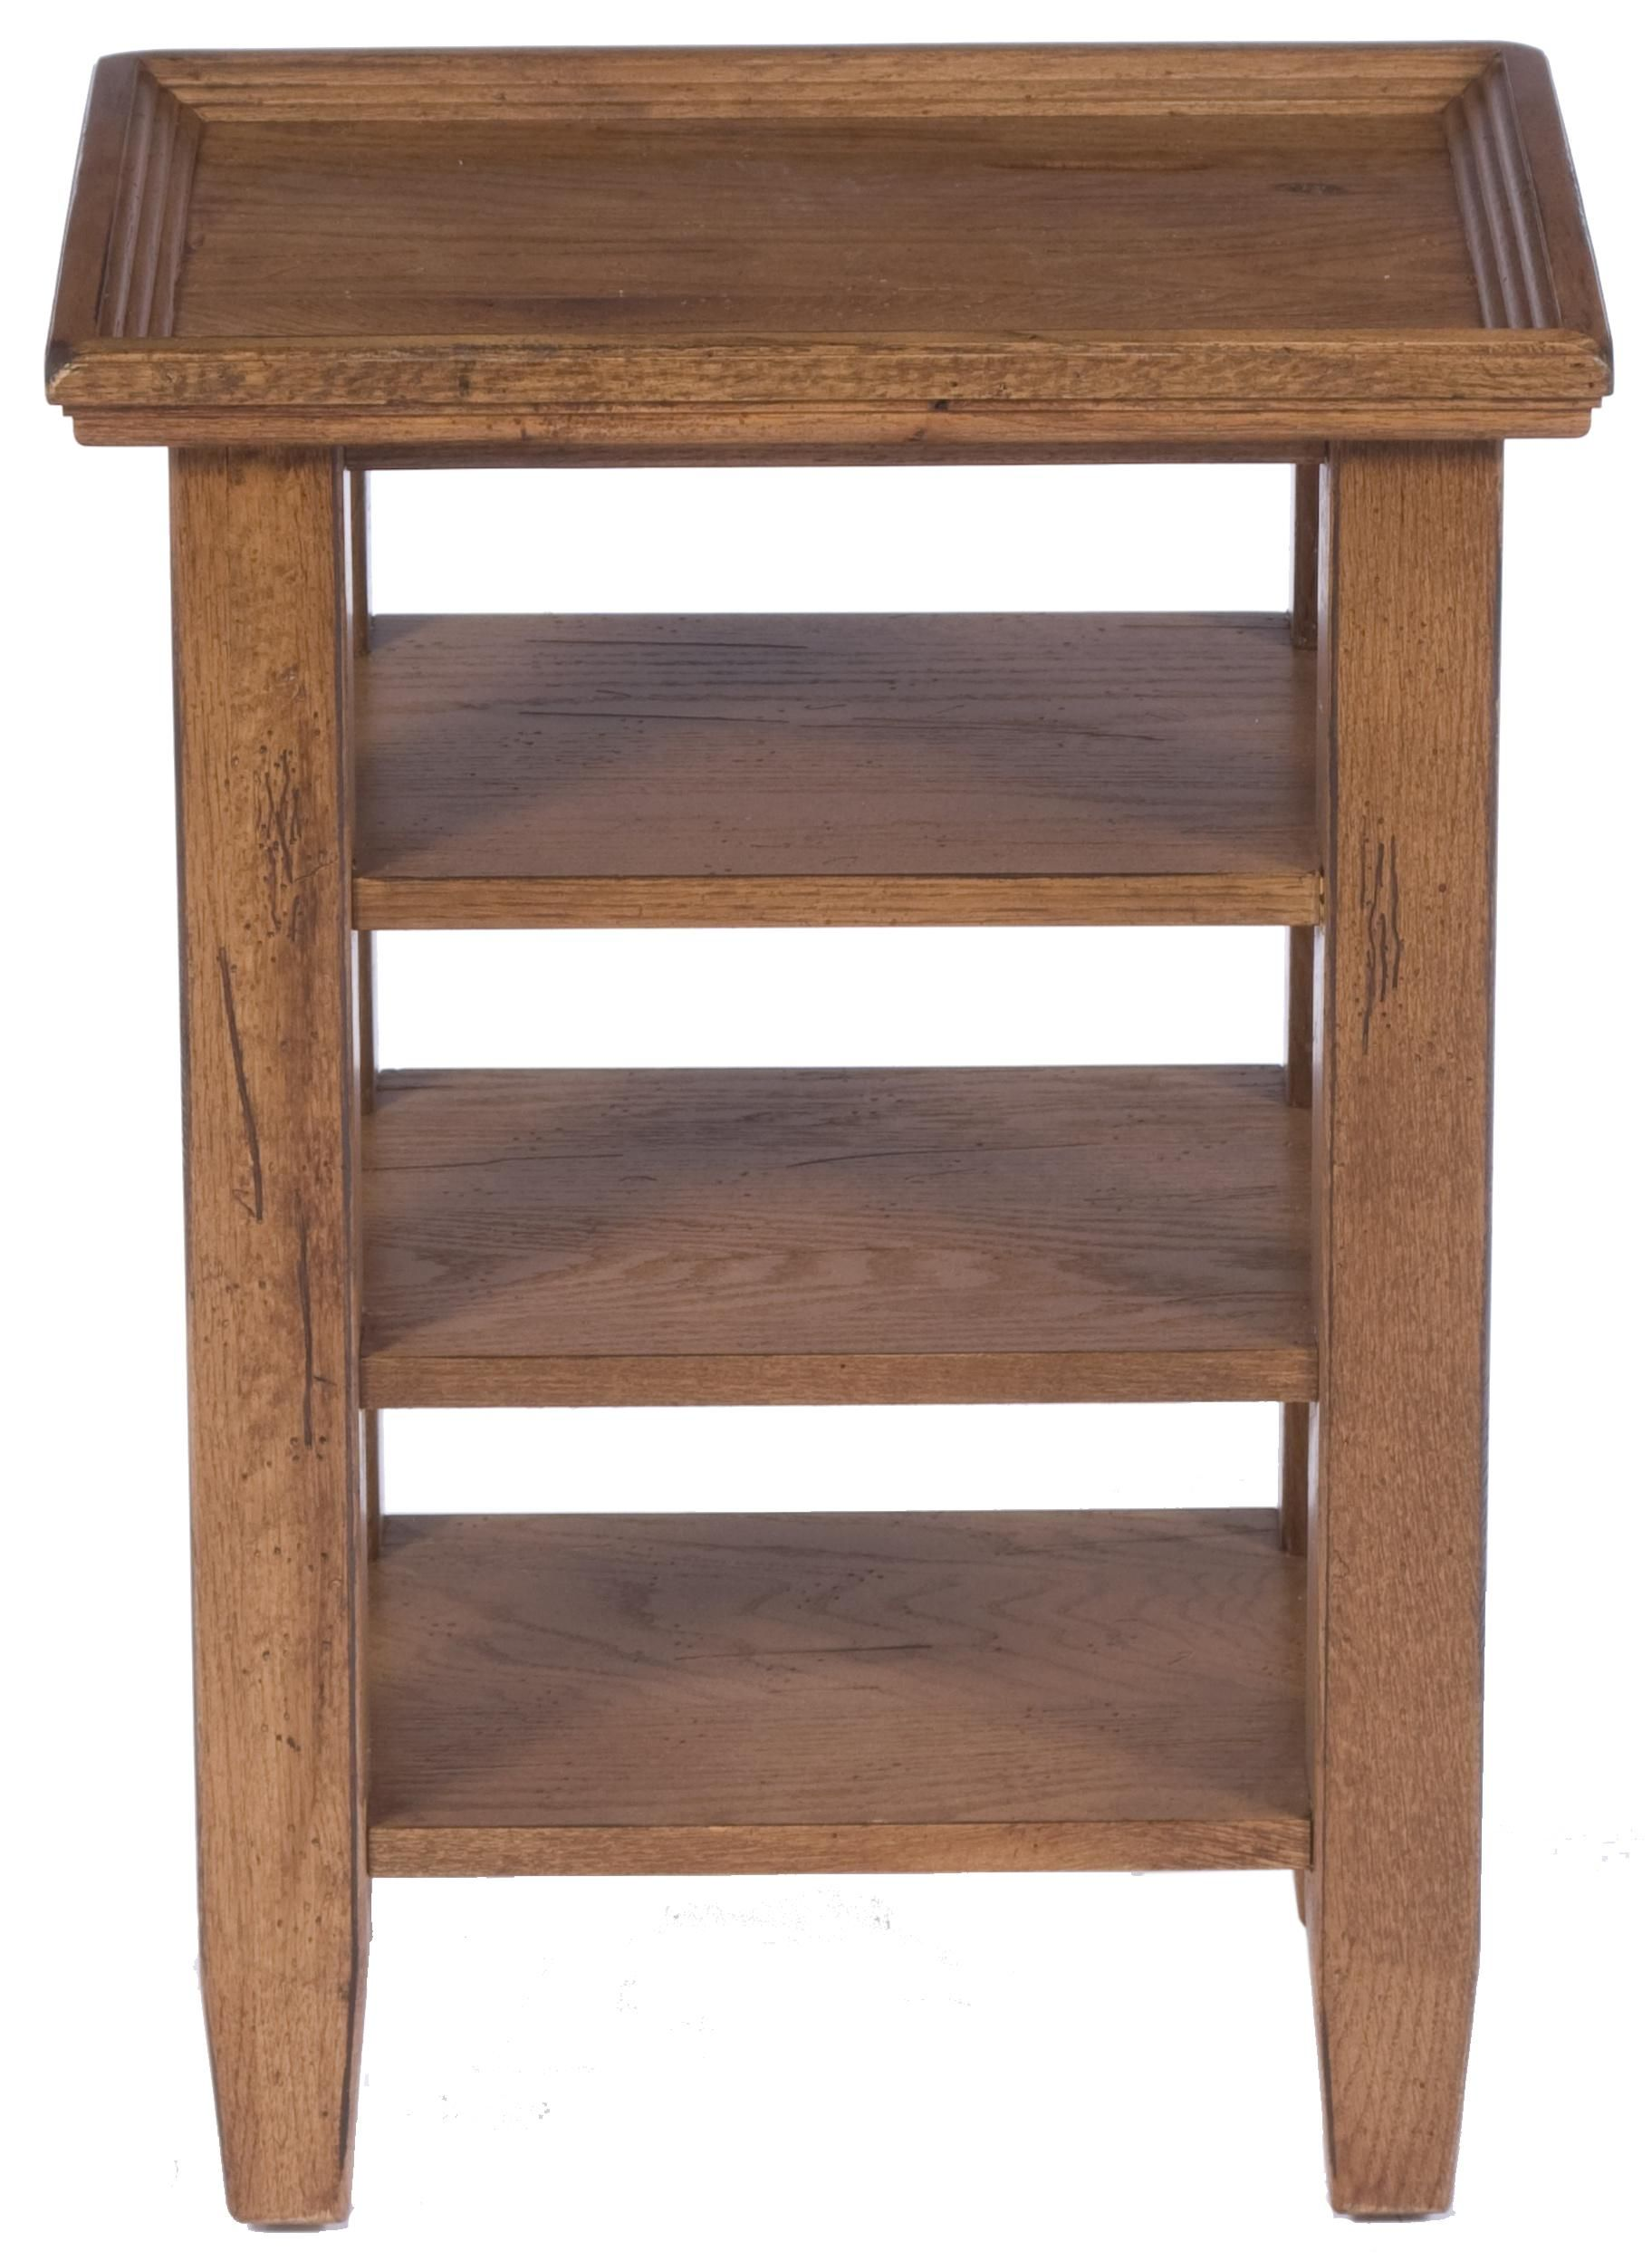 Attic Heirlooms Accessory Table By Broyhill Furniture At Pedigo Furniture